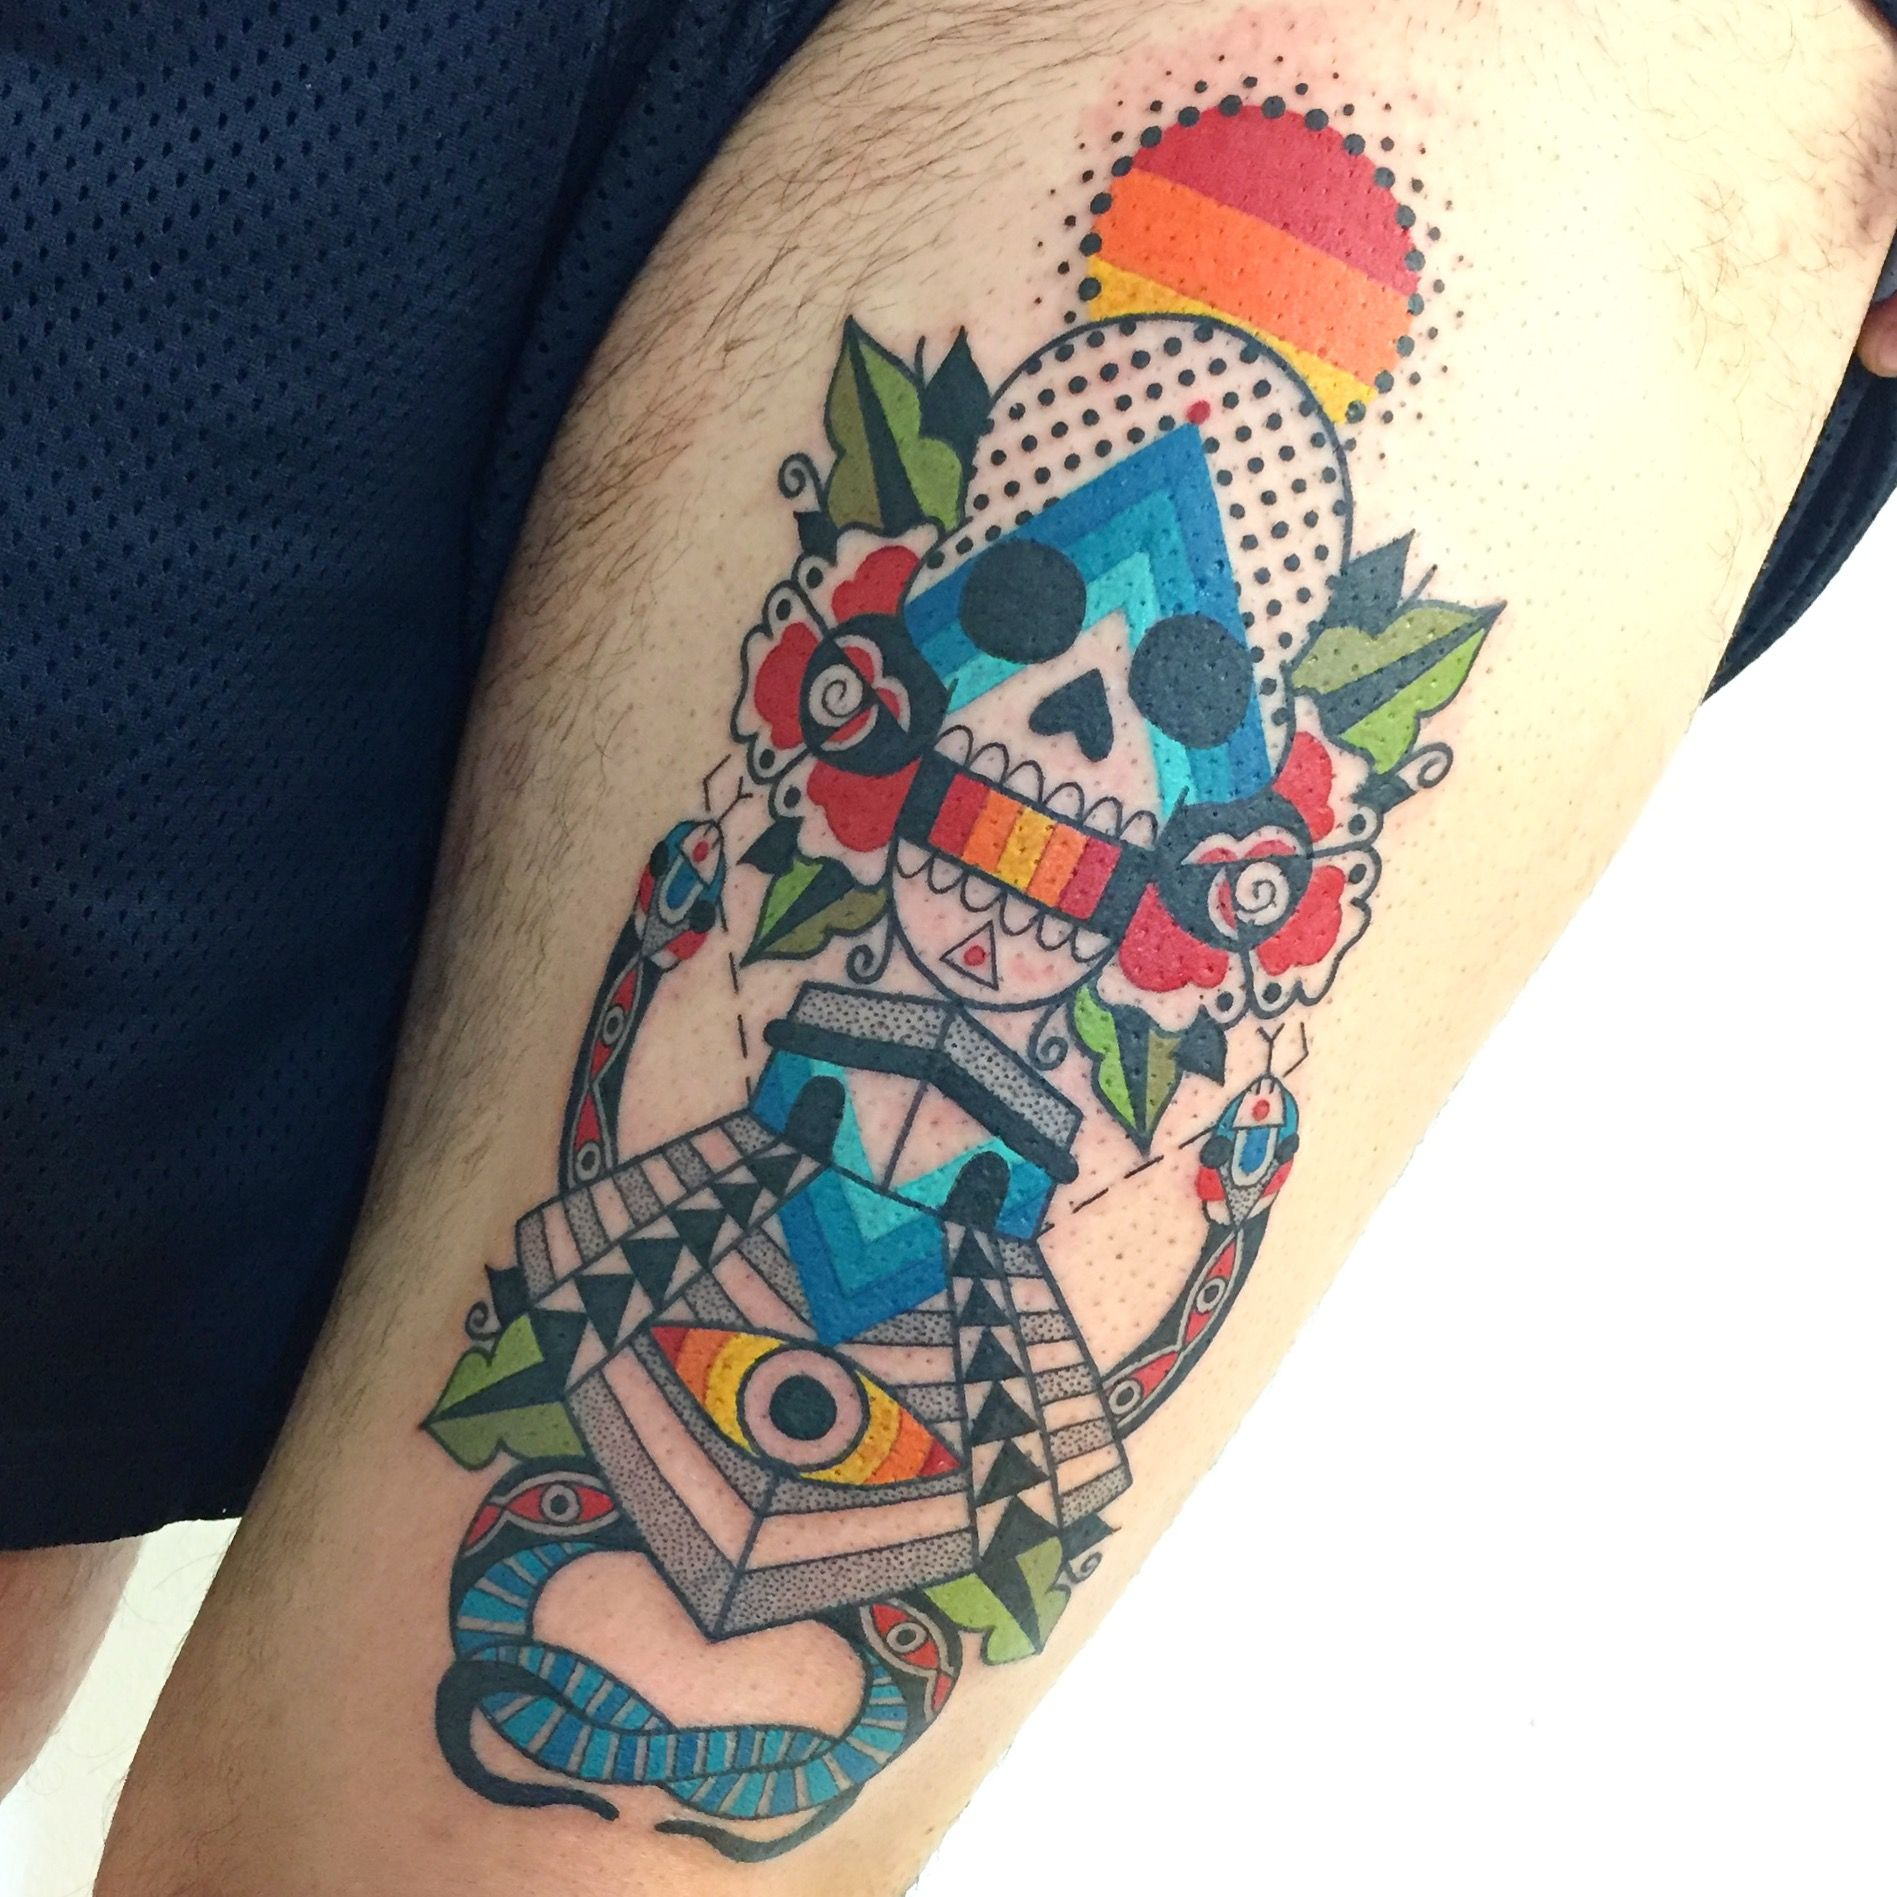 Aztec Temple Tattoo winston the whale - aztec temple, snake, skull, roses and